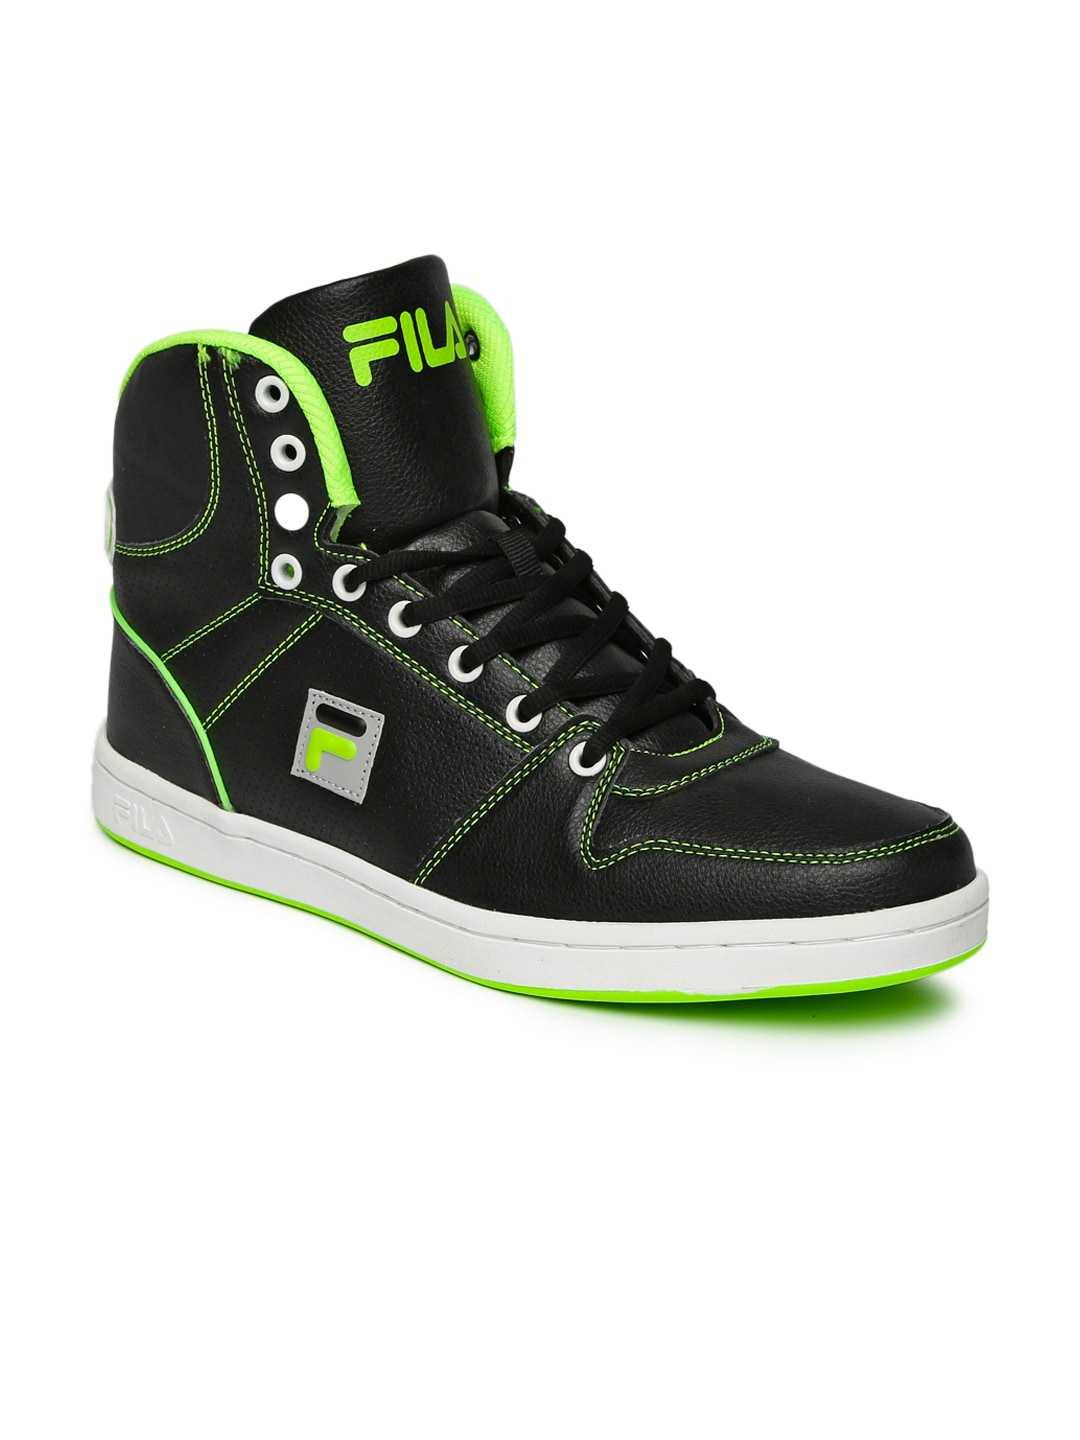 Buy Fila Tops Casual Shoes Casuals wkiuOXZPT